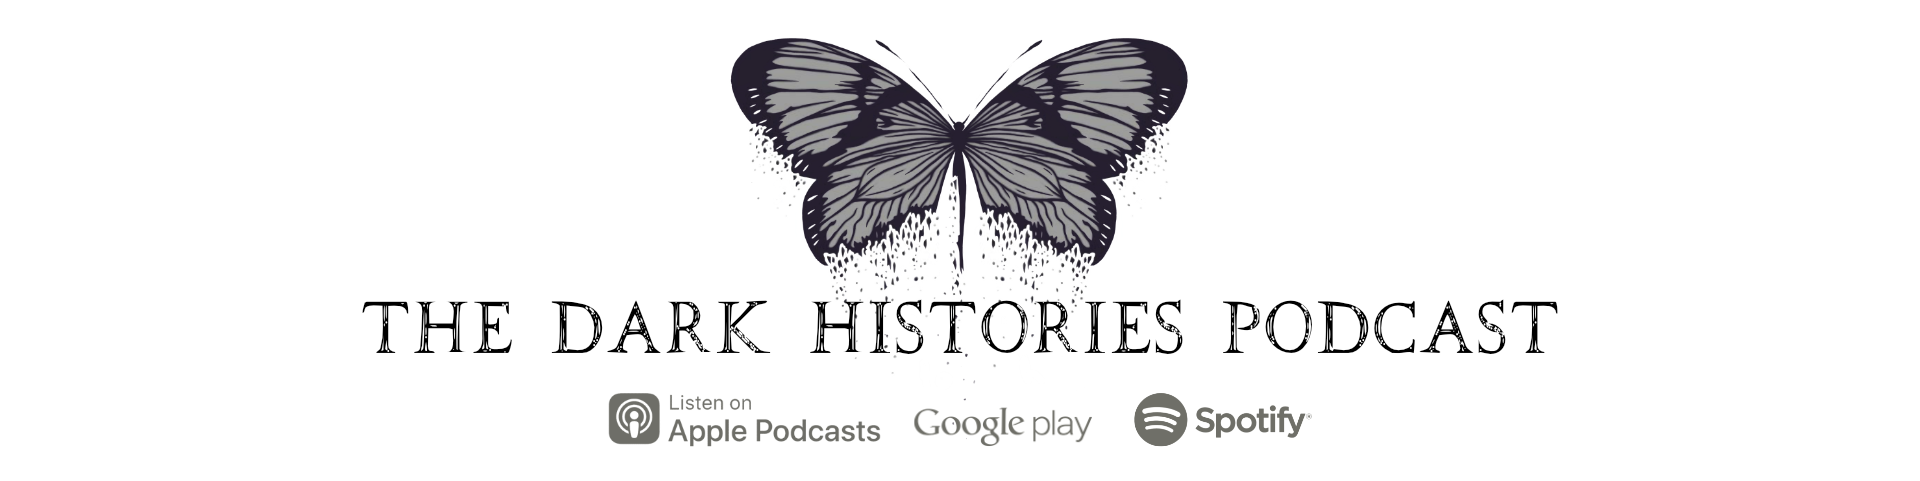 The Dark Histories Podcast